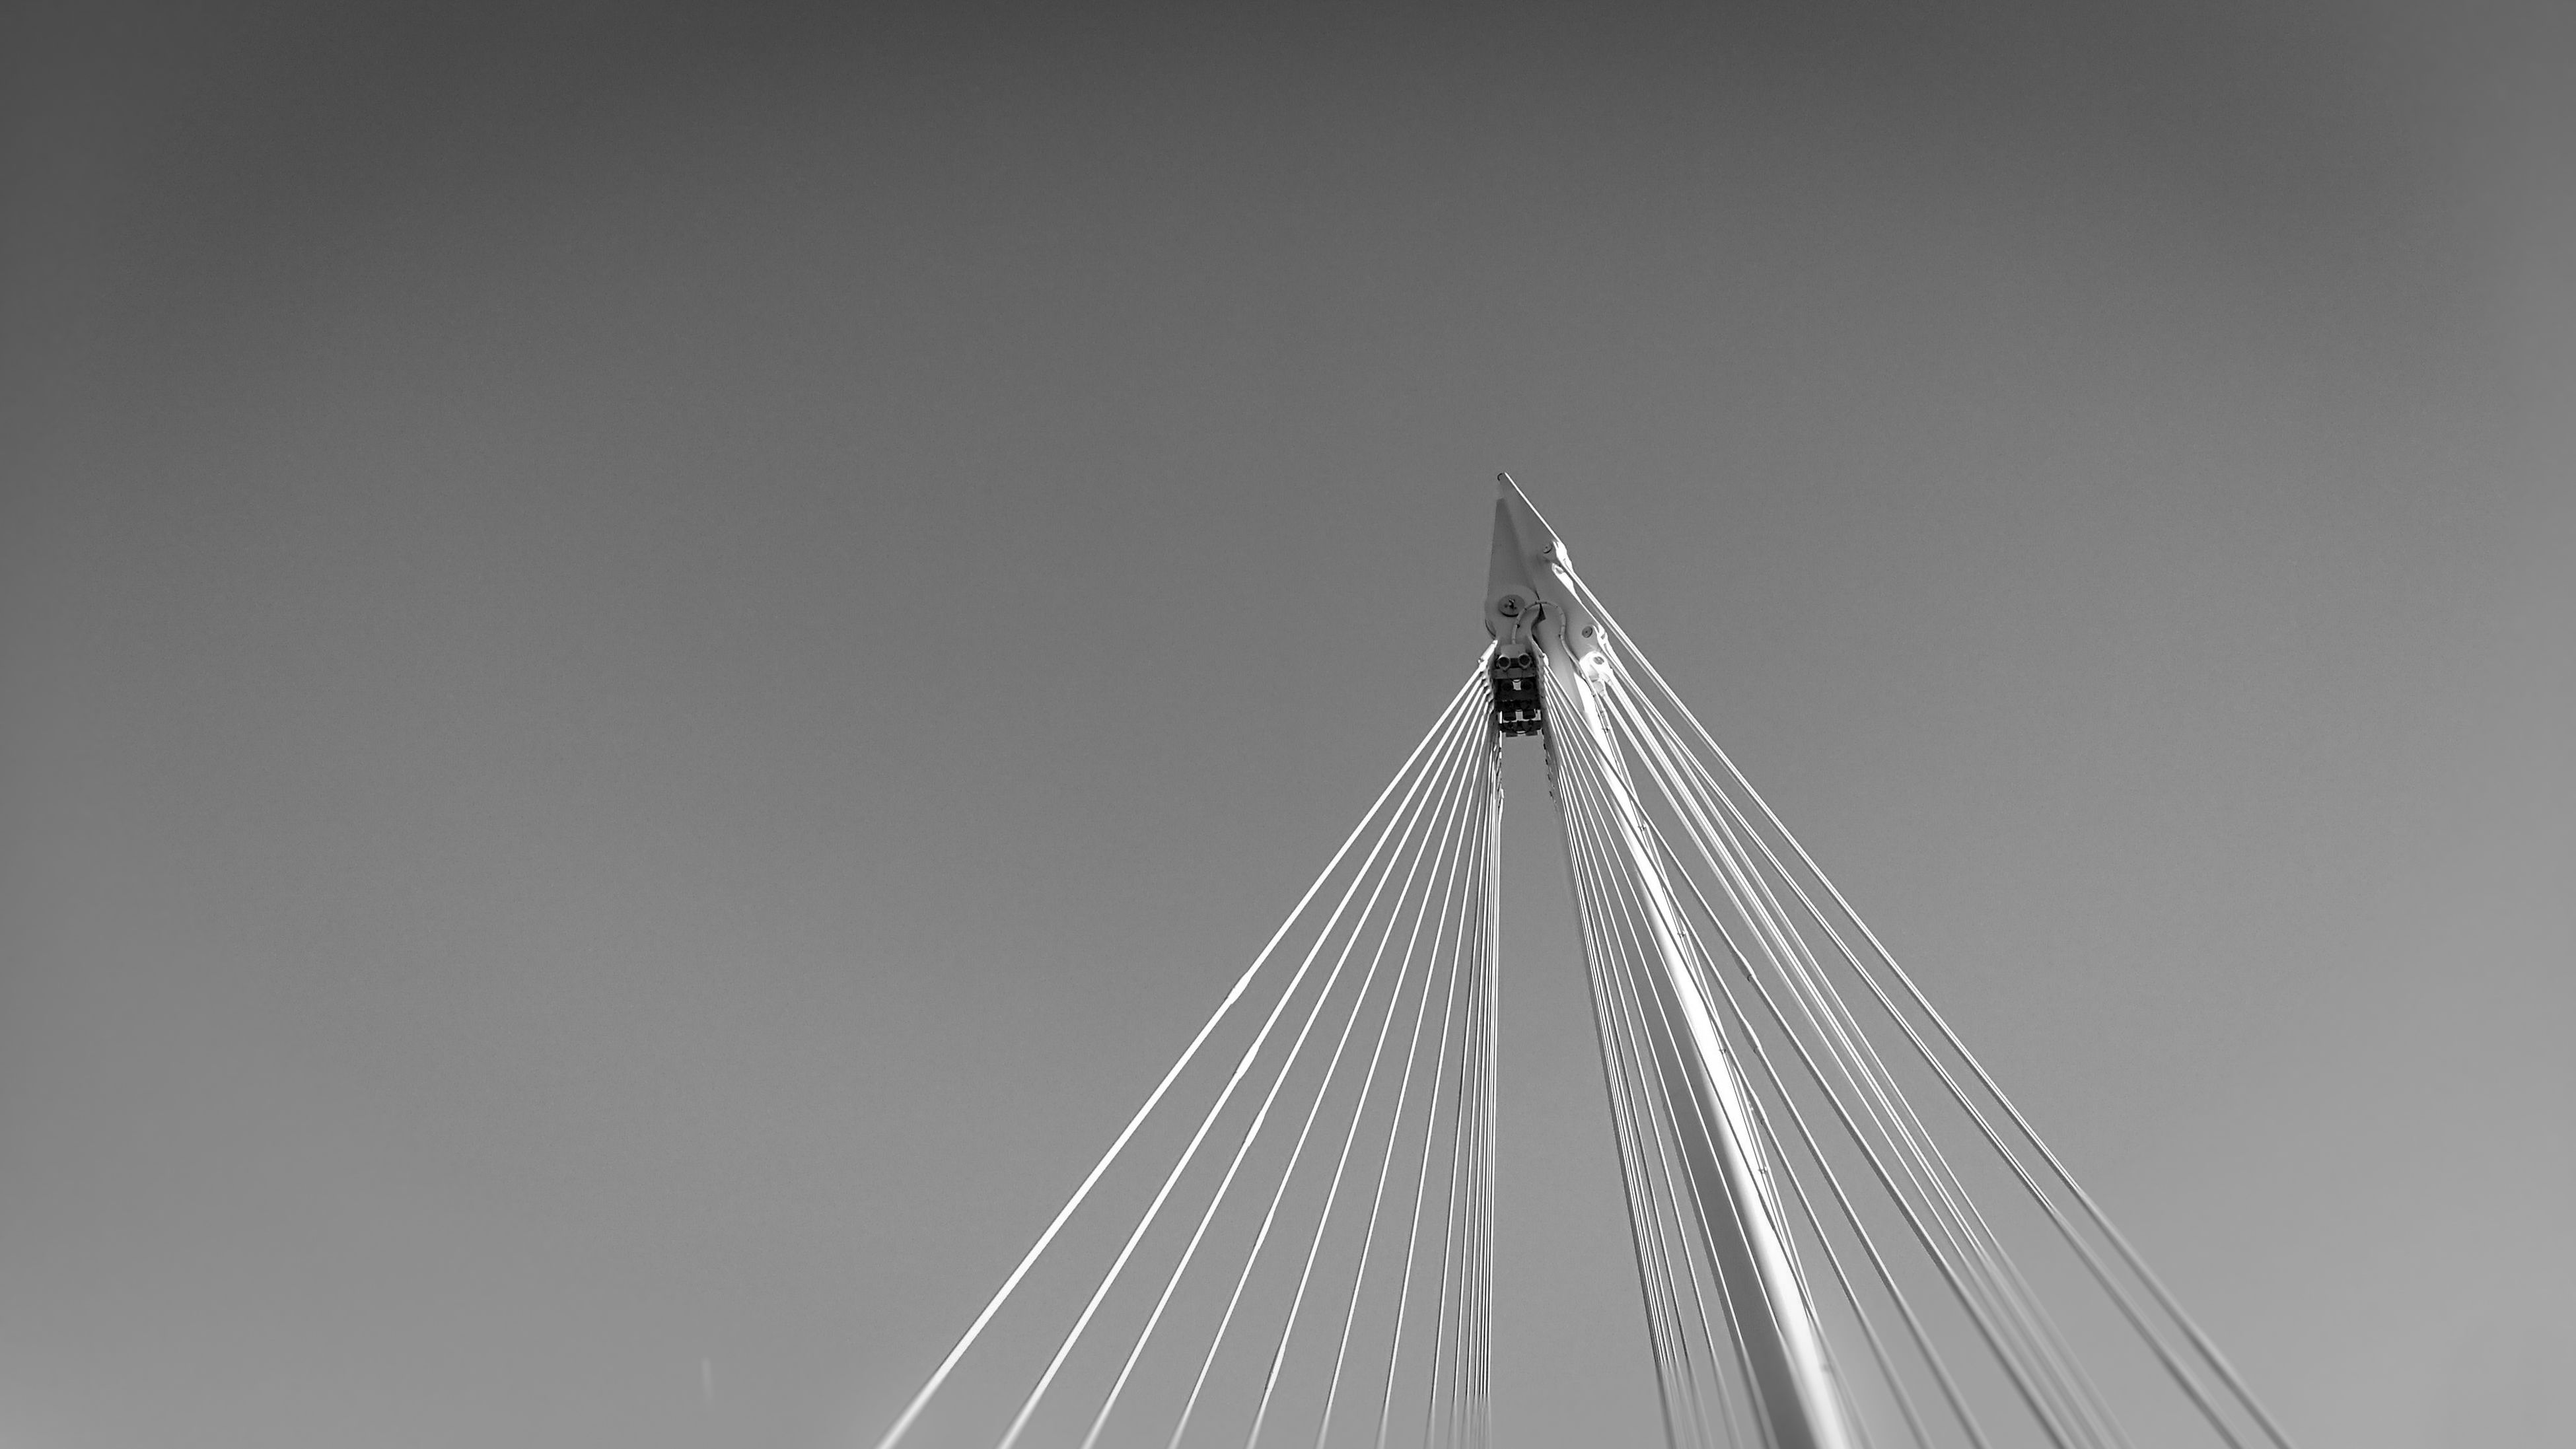 sky, low angle view, architecture, built structure, connection, bridge - man made structure, no people, suspension bridge, outdoors, day